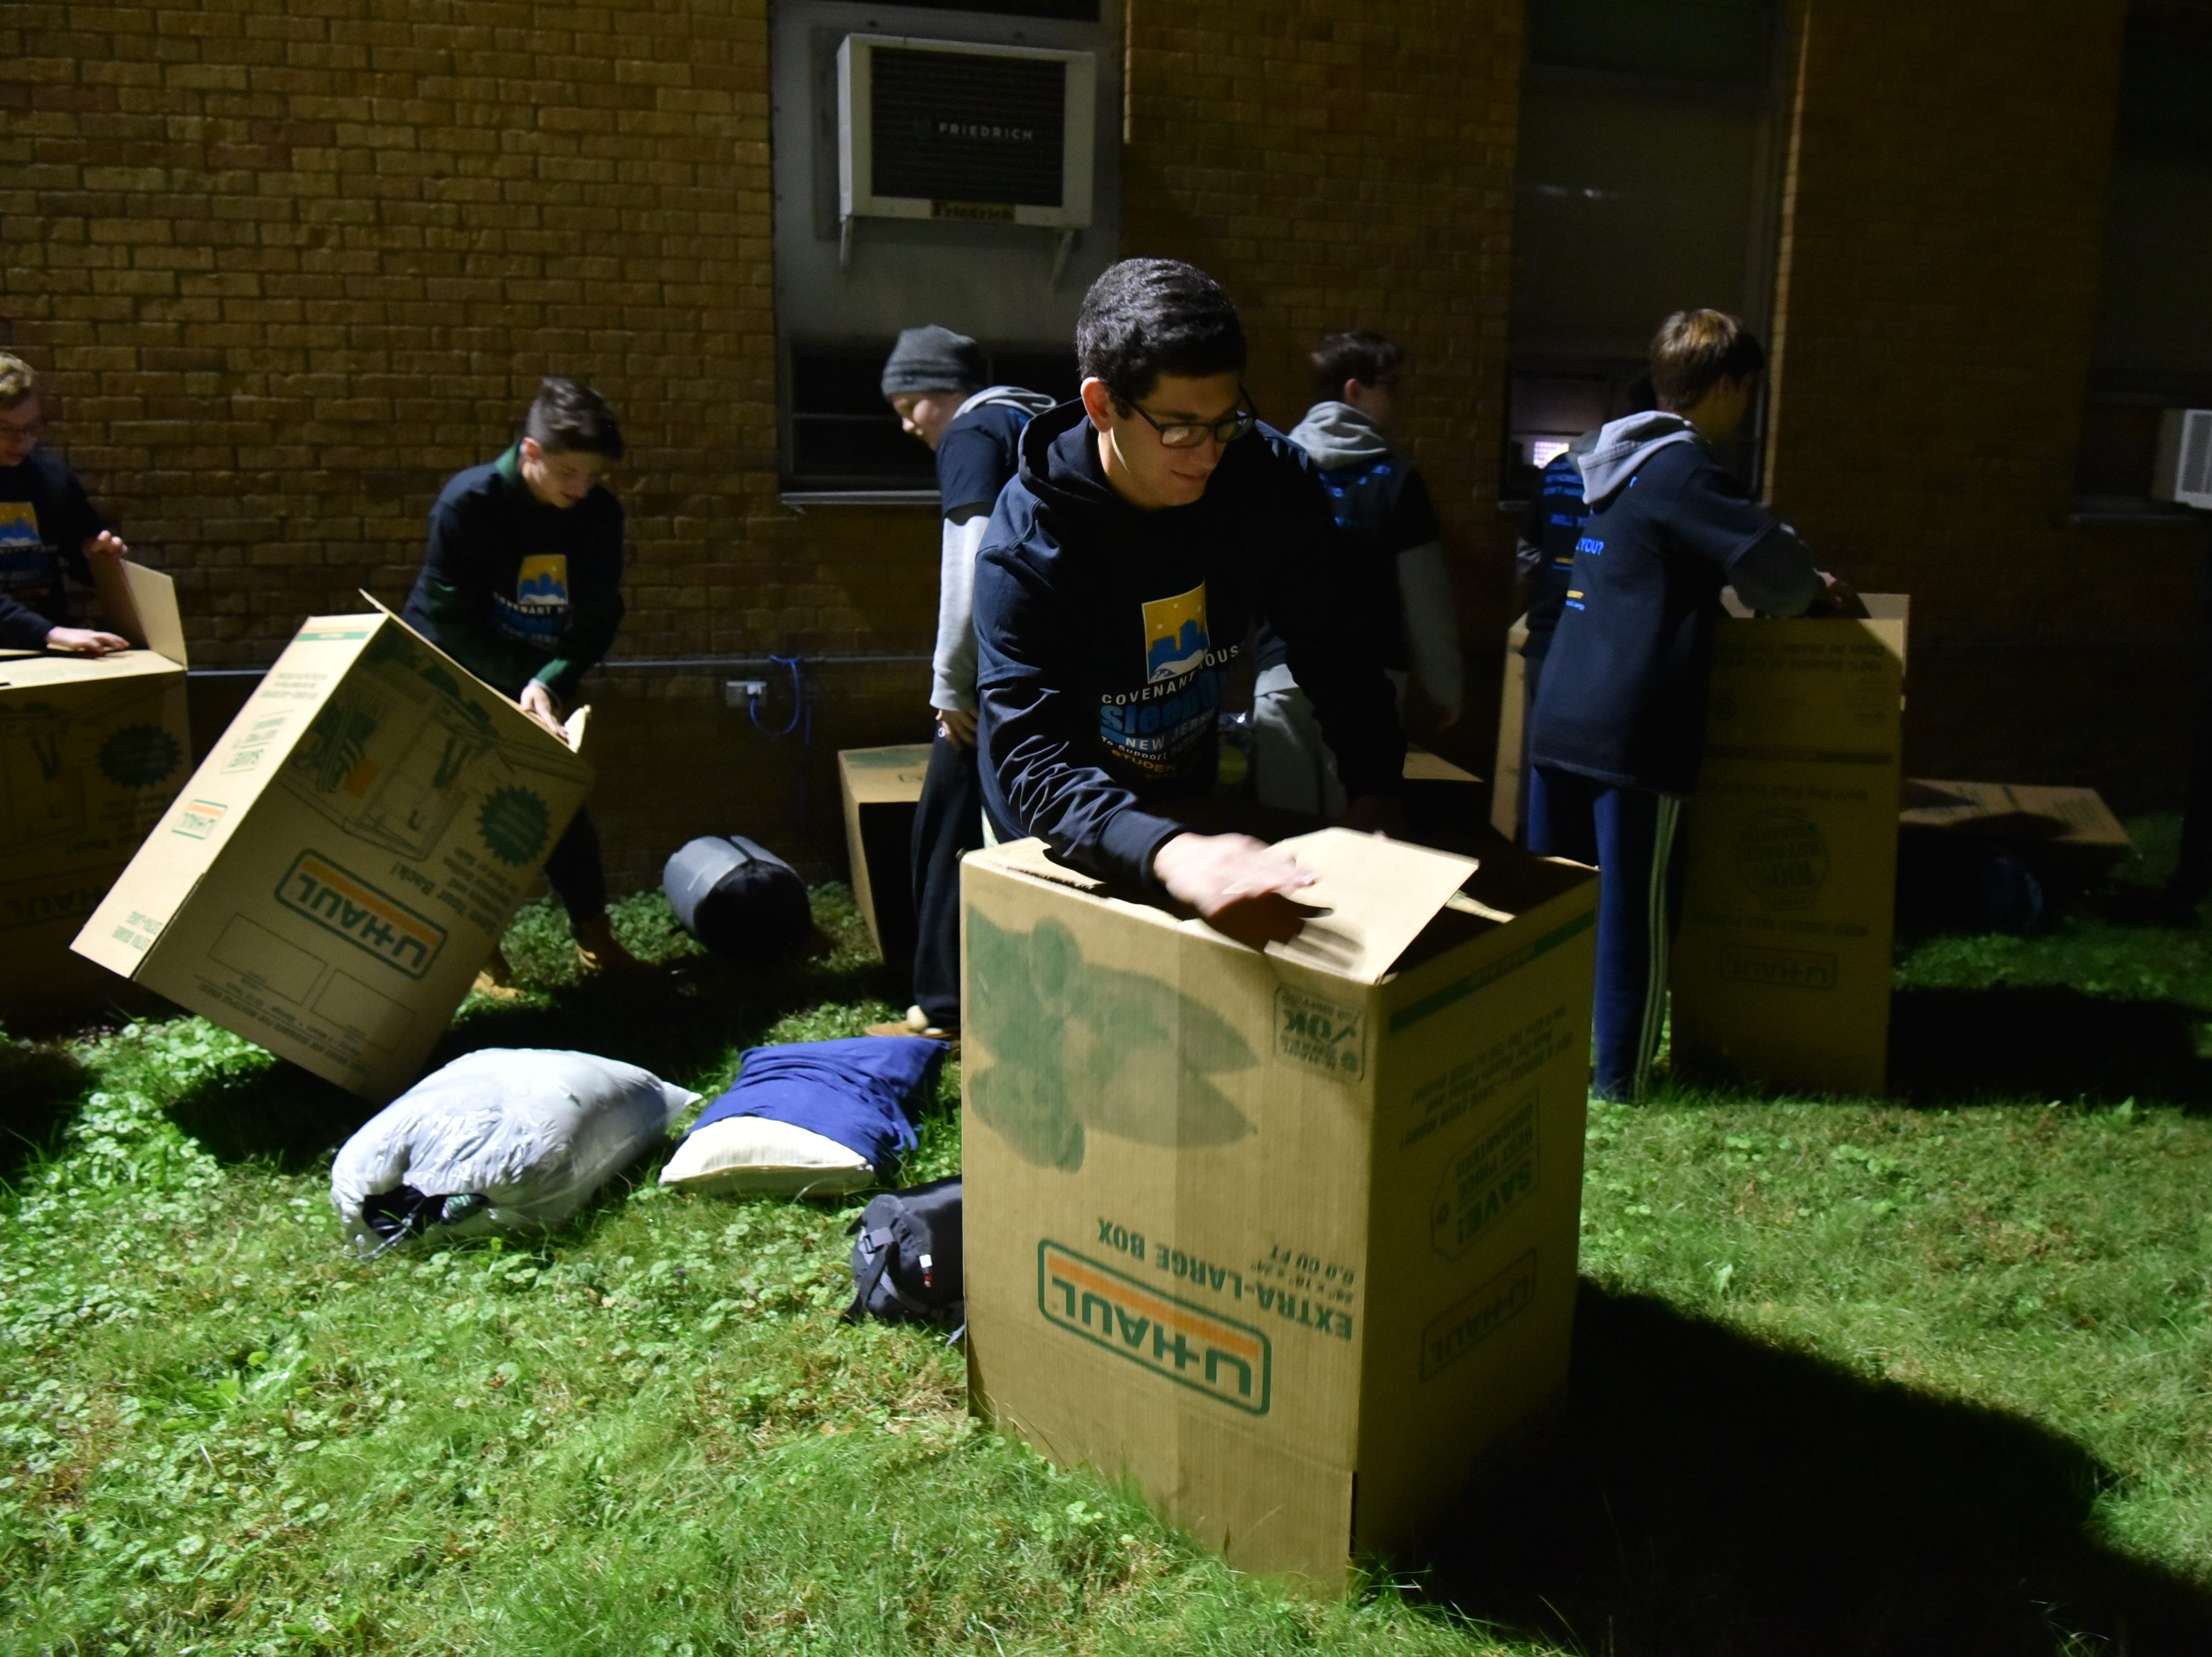 Students participating in the Covenant Sleepout, prepare their cardboard boxes for spending the night out.